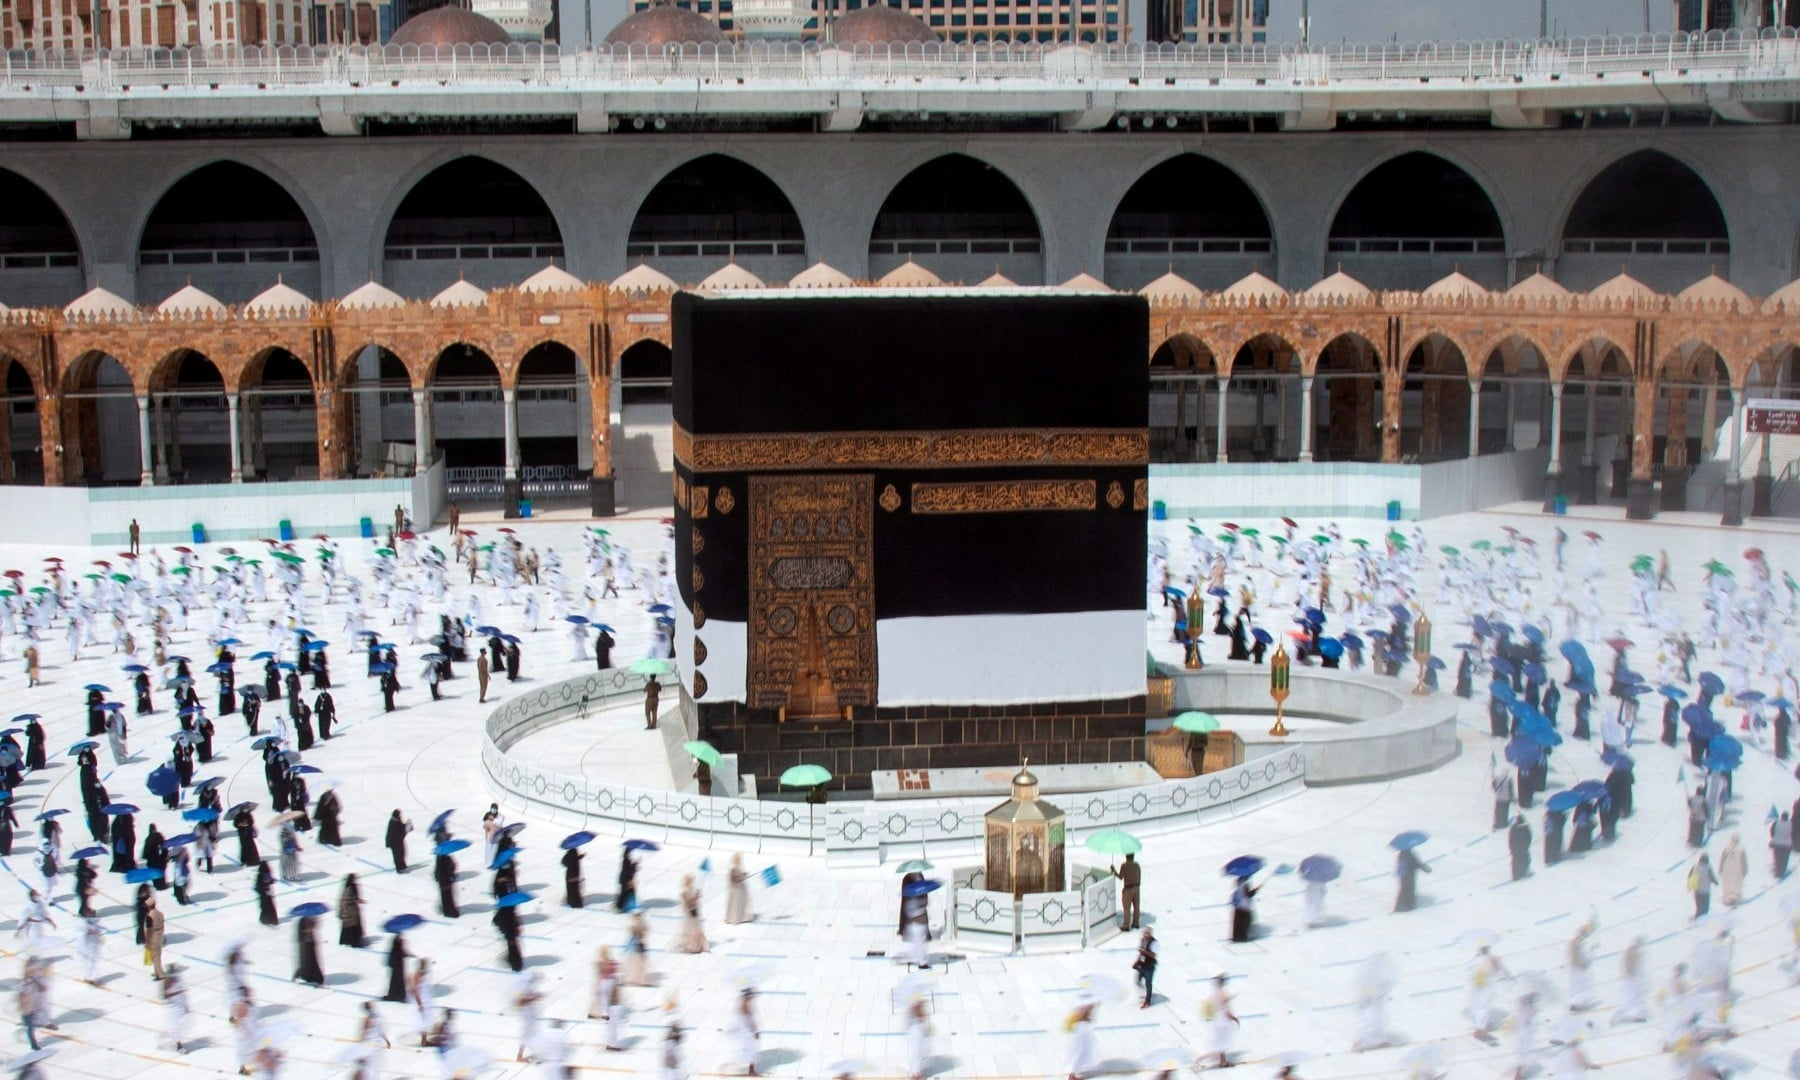 In pictures: Social distancing and electronic wristbands as pilgrims attend scaled-down Haj